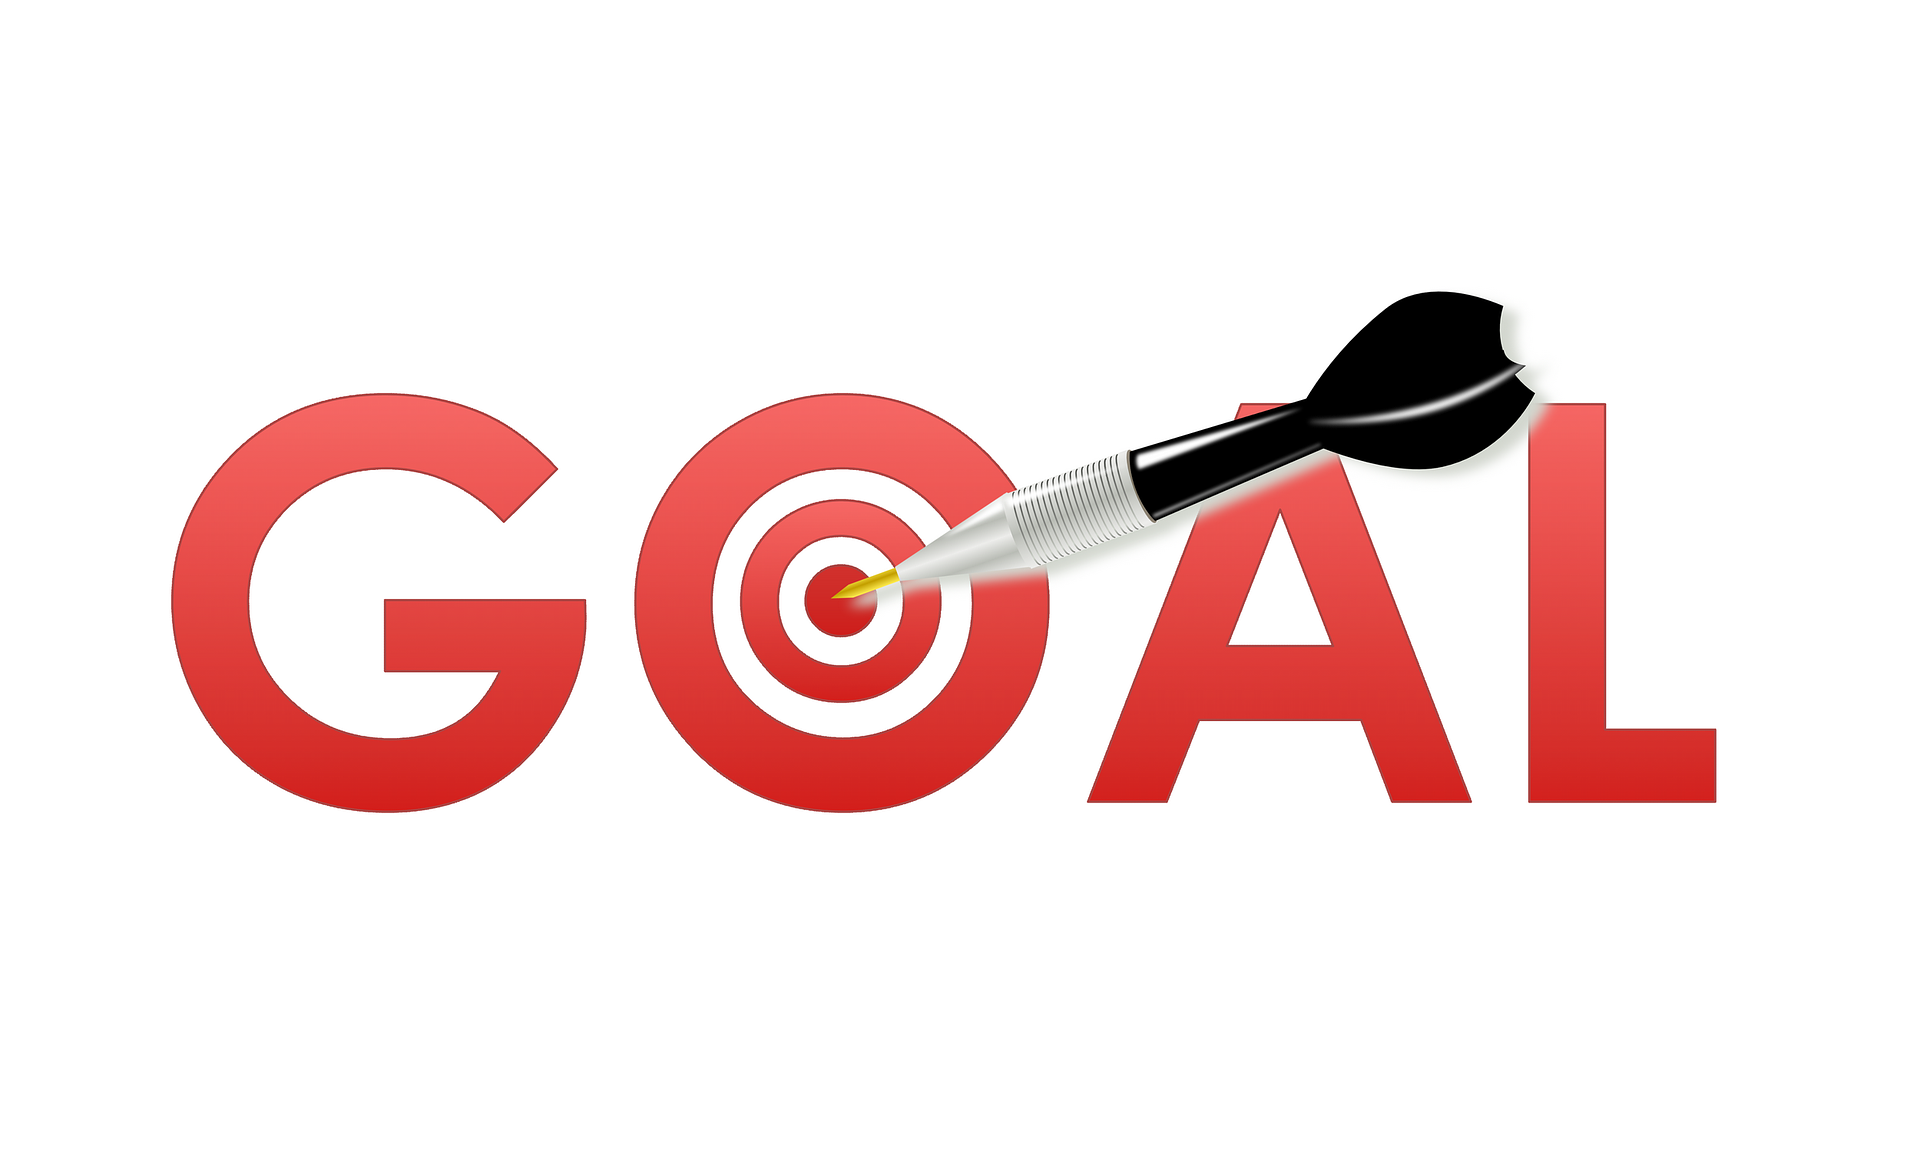 Do You Know the 7 Web Conversion Goals?